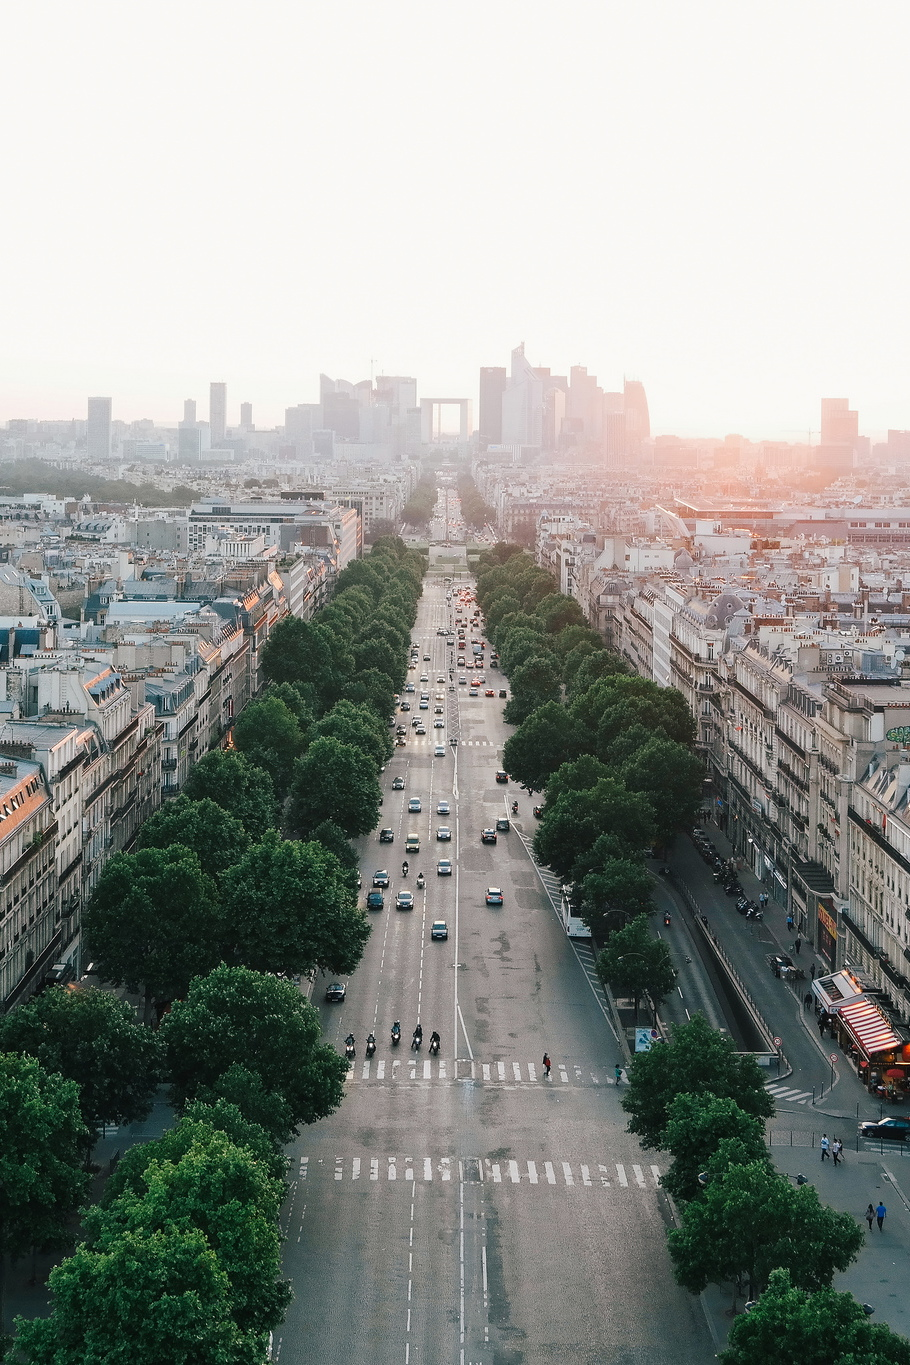 View of Paris architecture and city layout ITCHBAN.com